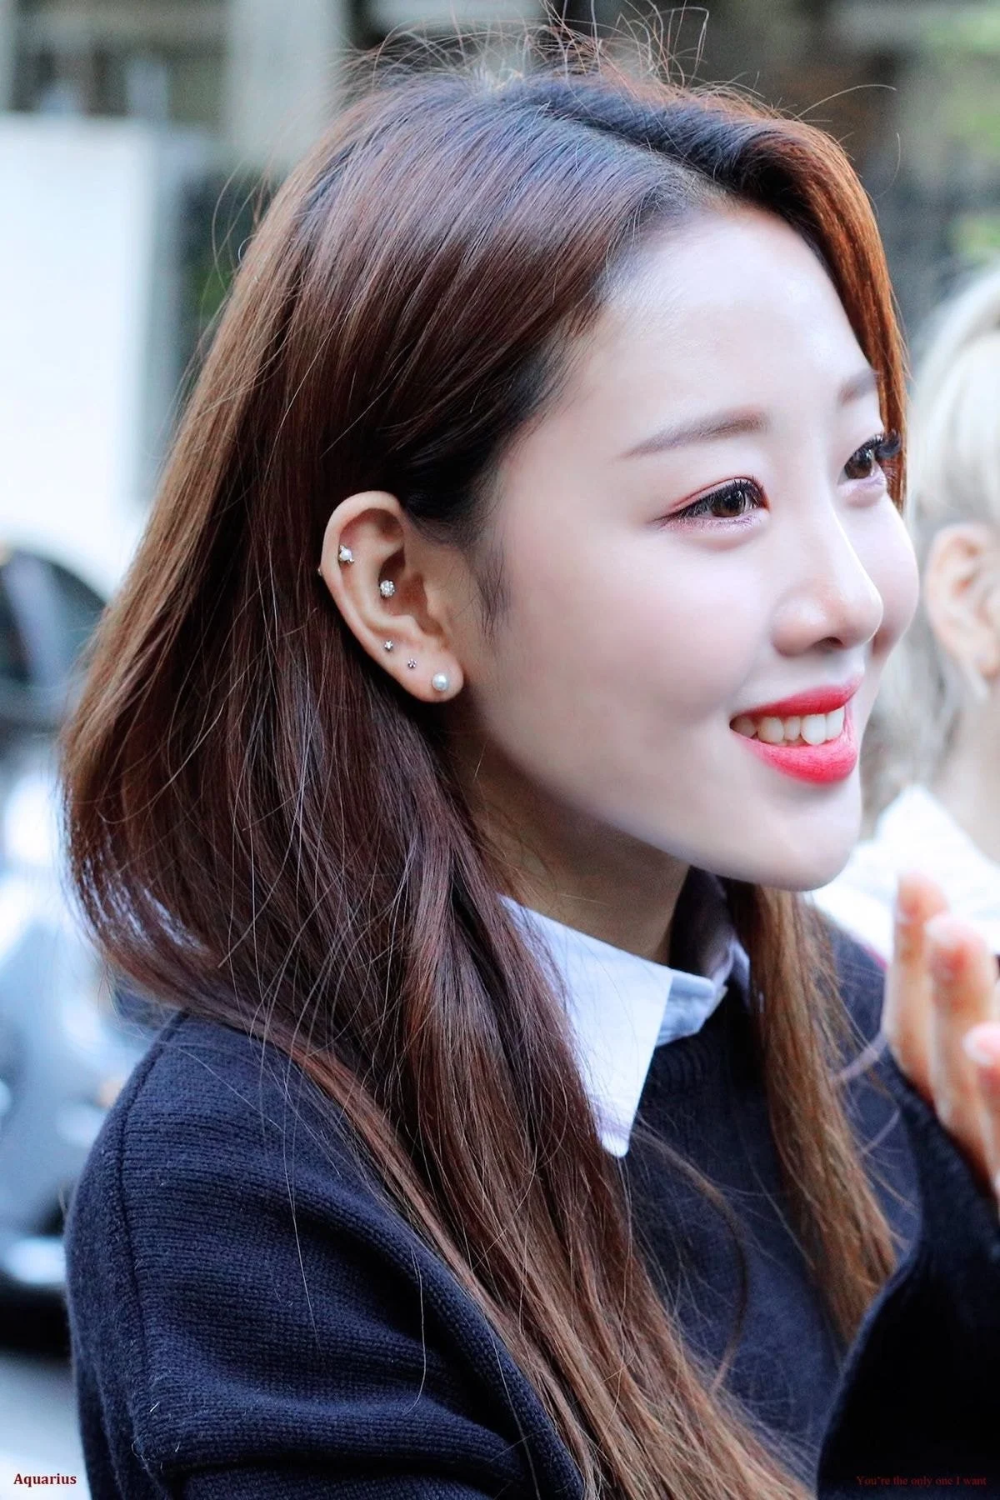 Kpop Ear Piercings : piercings, These, Female, Idols, Piercings, Koreaboo, Girls,, Rook,, Tragus